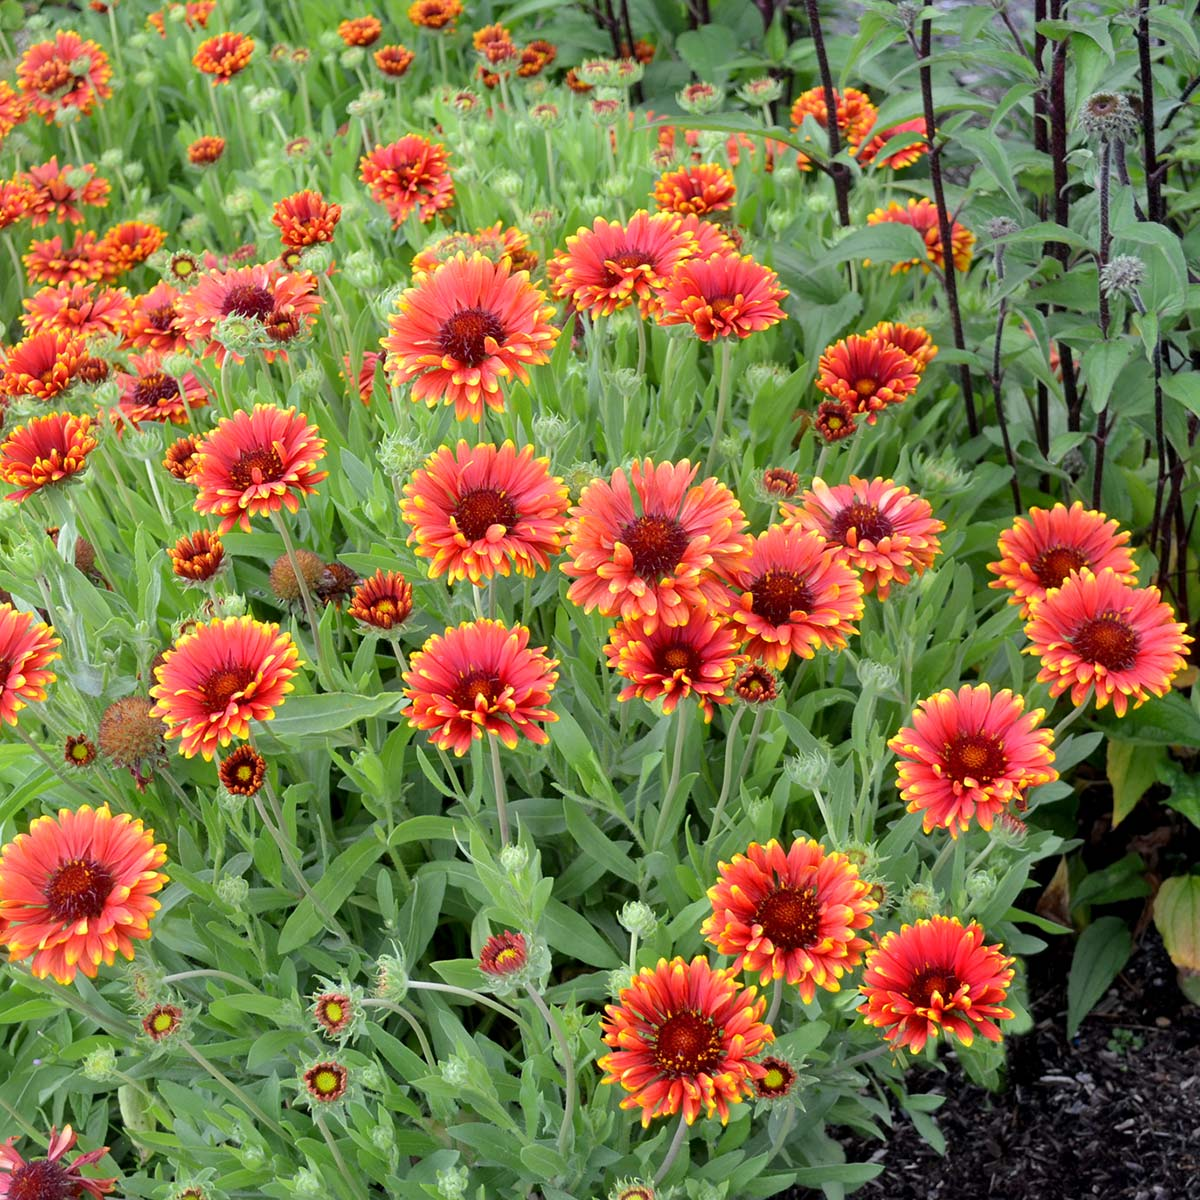 Gaillardia Red Sun Terra Nova Nurseries Inc